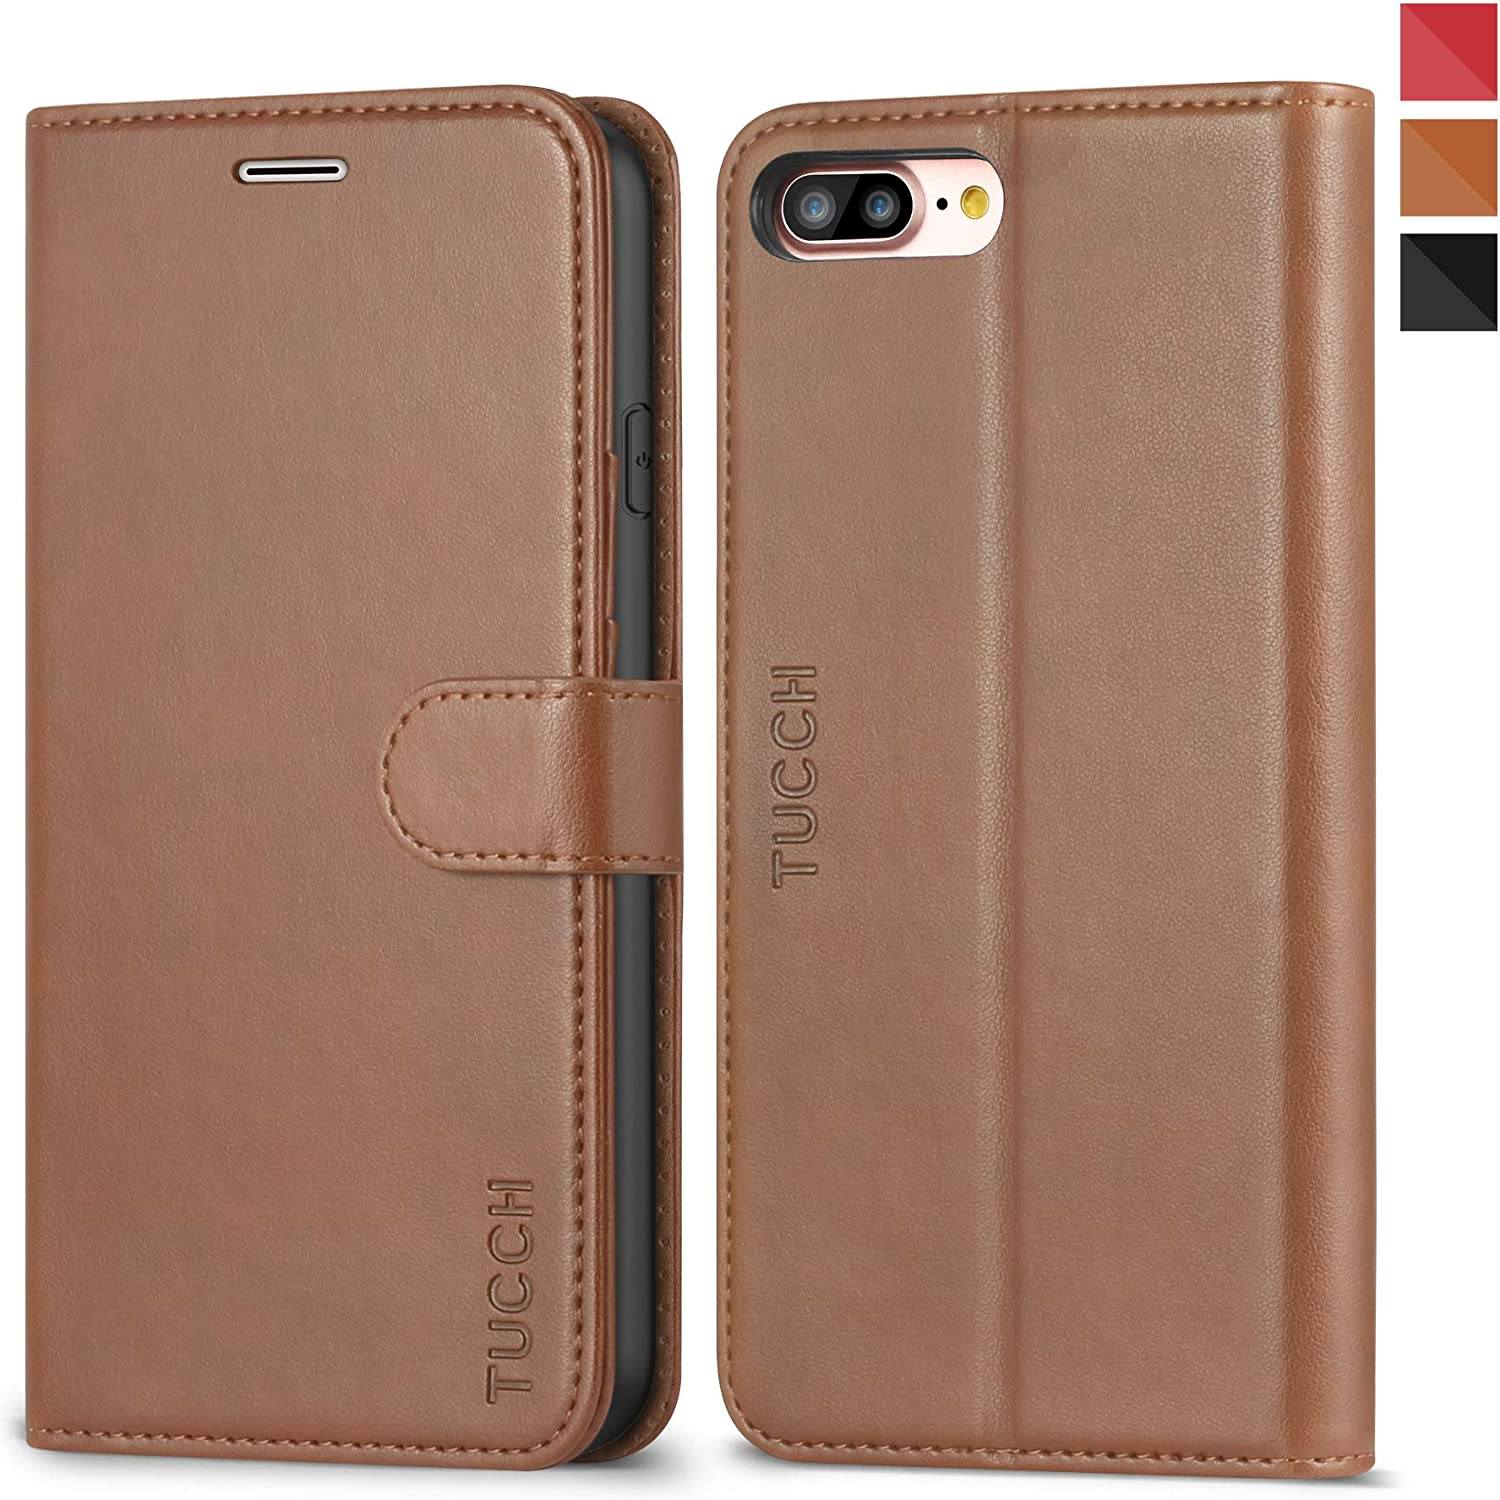 TUCCH iPhone 8 Plus Wallet Case, iPhone 7 Plus Case, Leather Wallet Phone Case [Card Slot] [Flip] [Wallet] [Stand] Carry-All Case Compatible iPhone 8 Plus/7 Plus 5.5 Inch, Brown